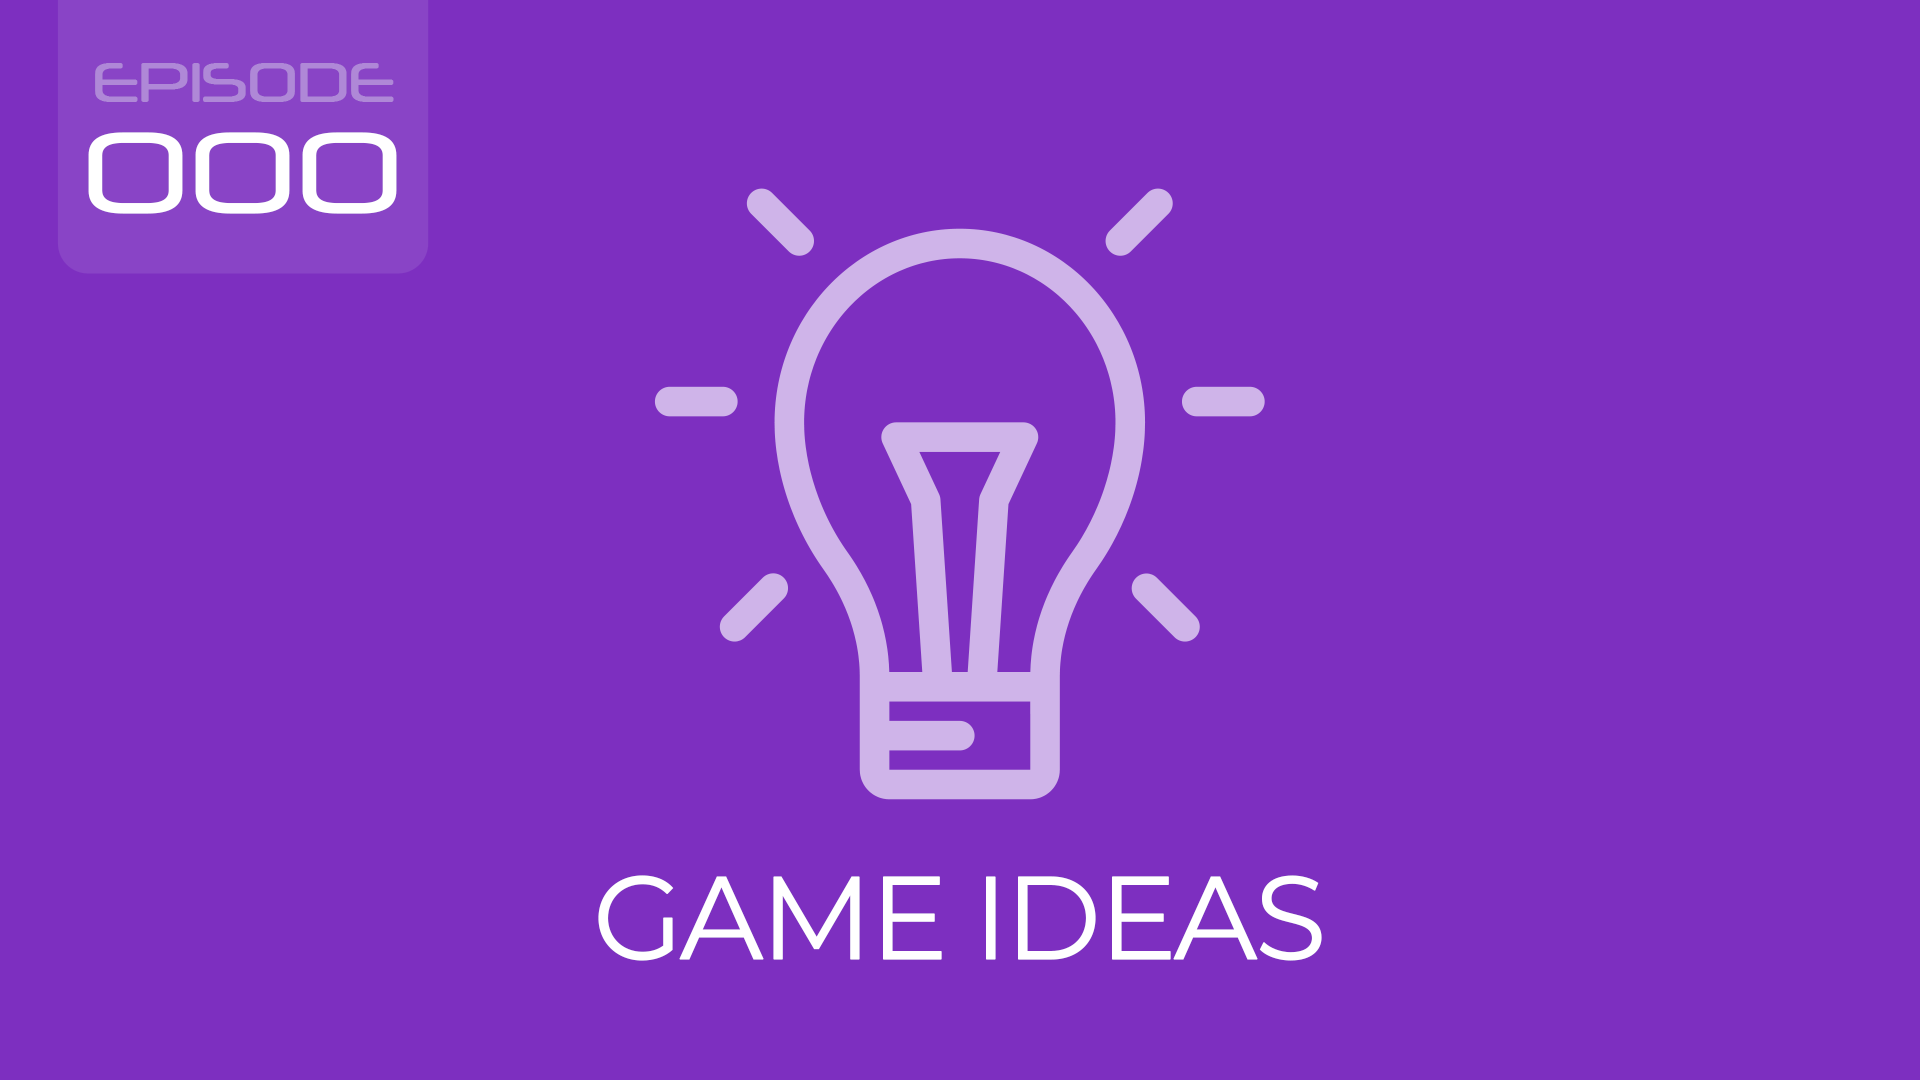 Game Dev Podcast - 000 - How to get Game Ideas